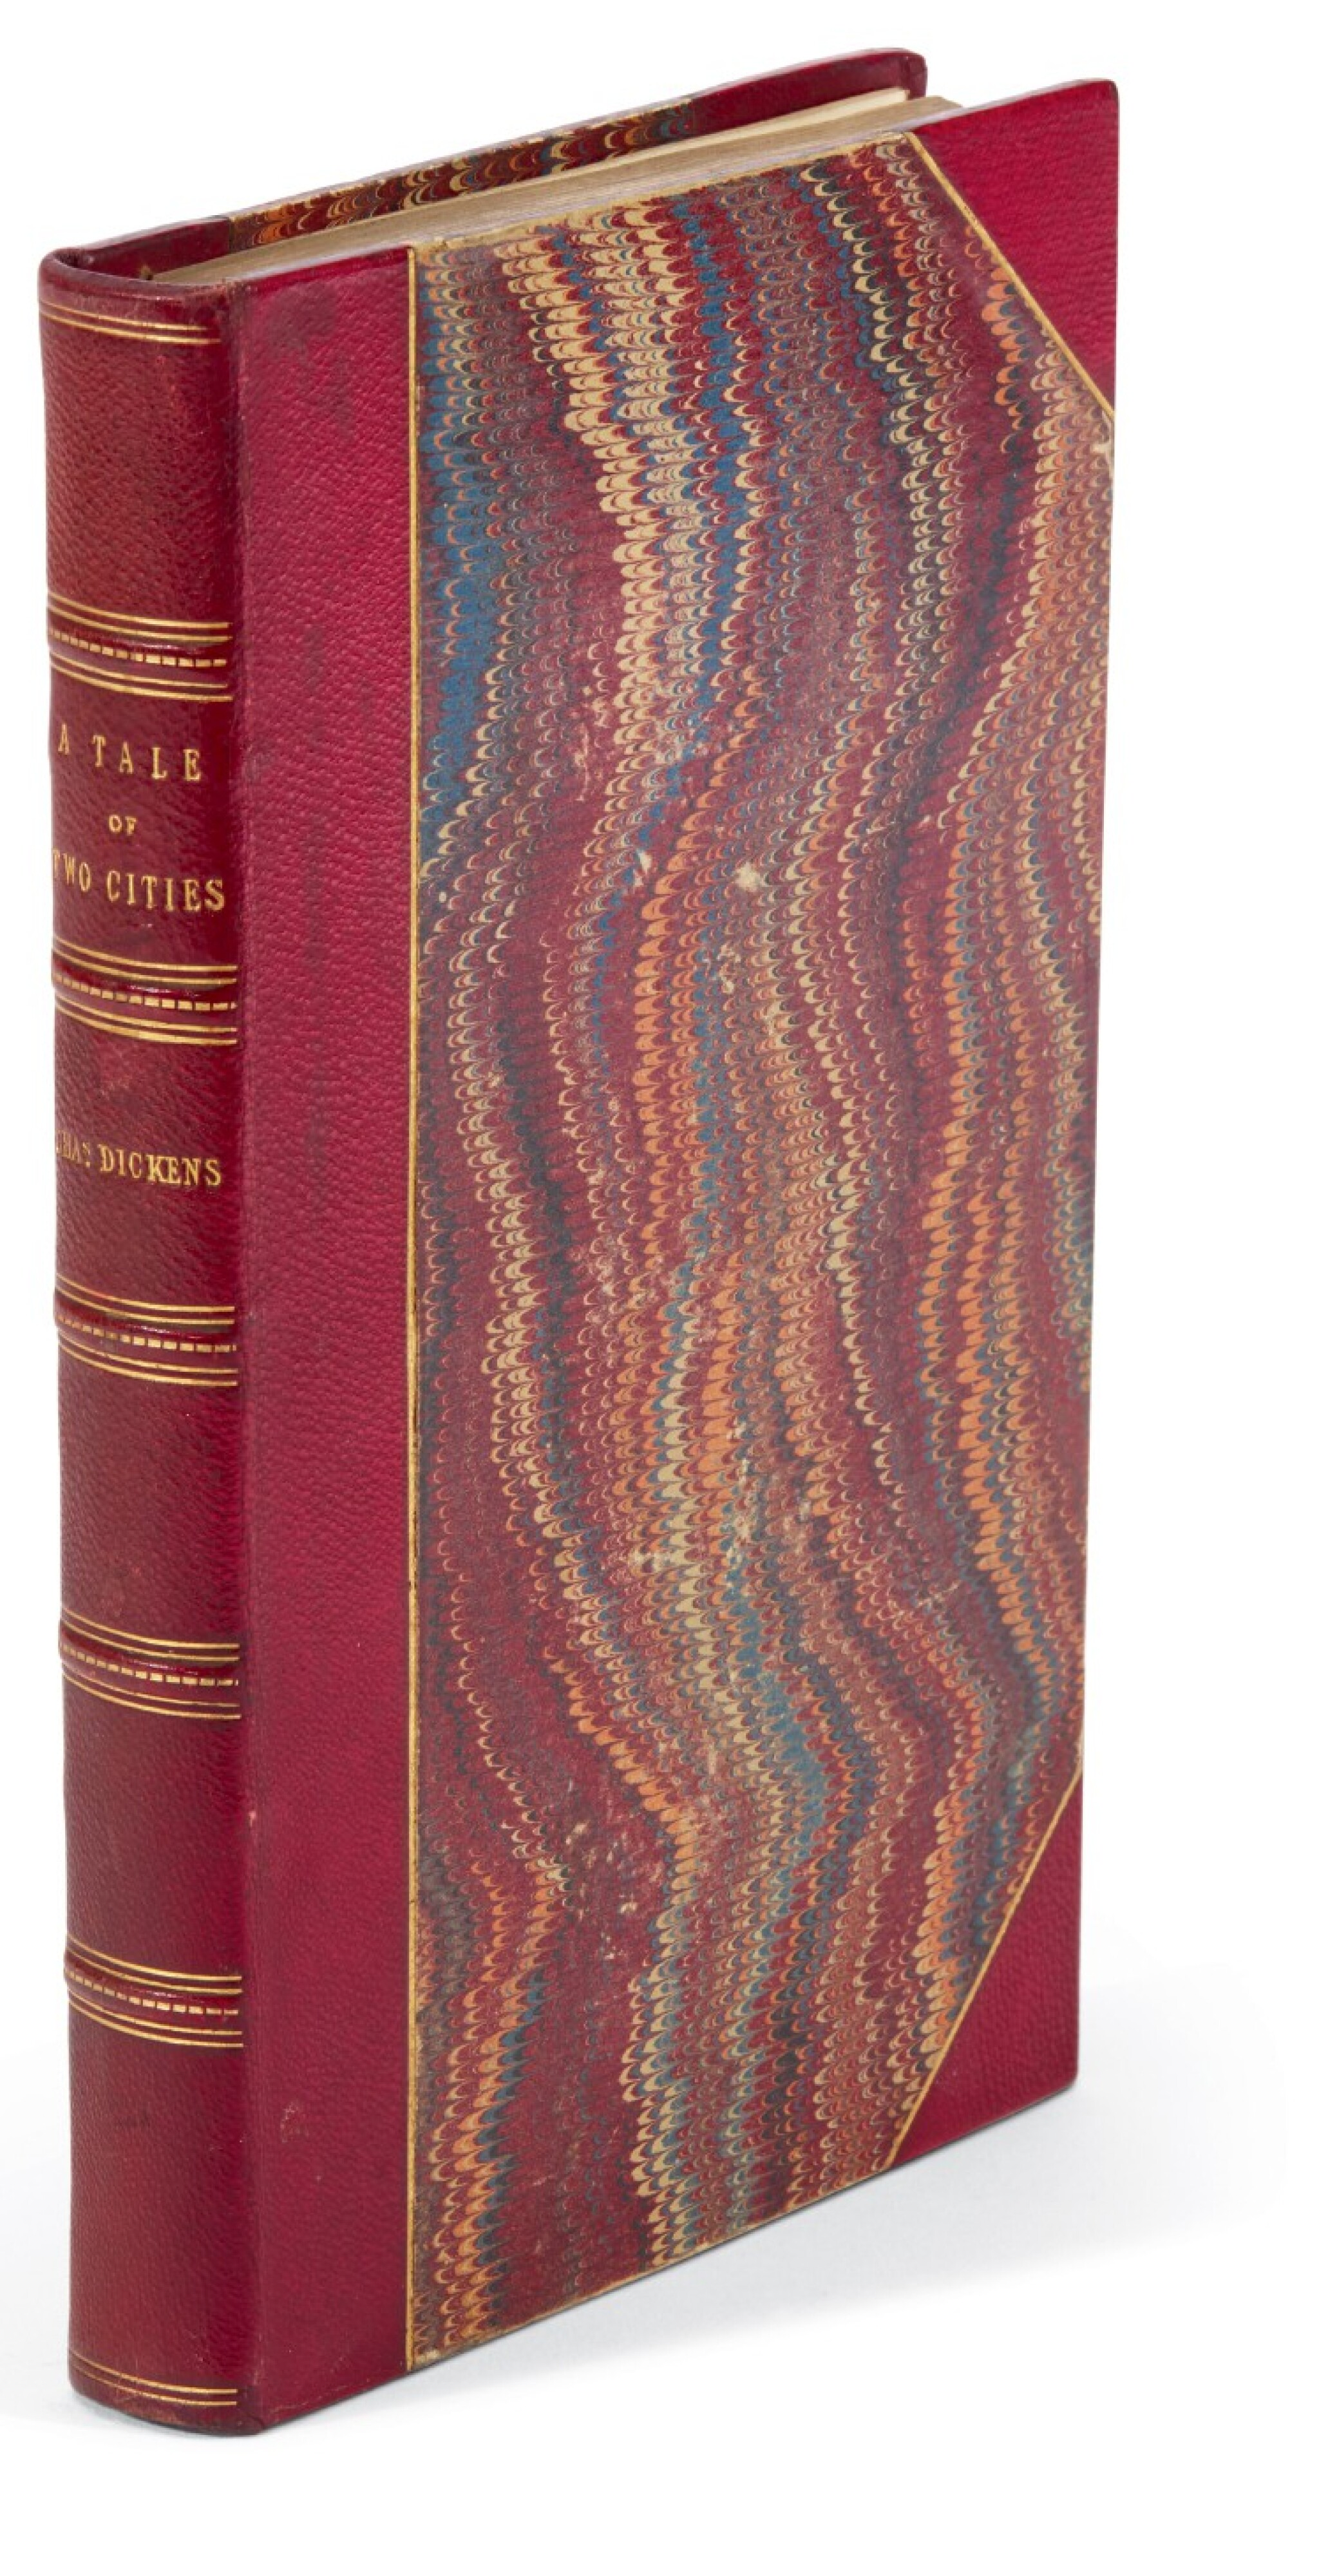 View full screen - View 1 of Lot 175. Dickens, A Tale of Two Cities, 1858, presentation copy in presentation binding inscribed to Mrs Cowden Clarke, letter.